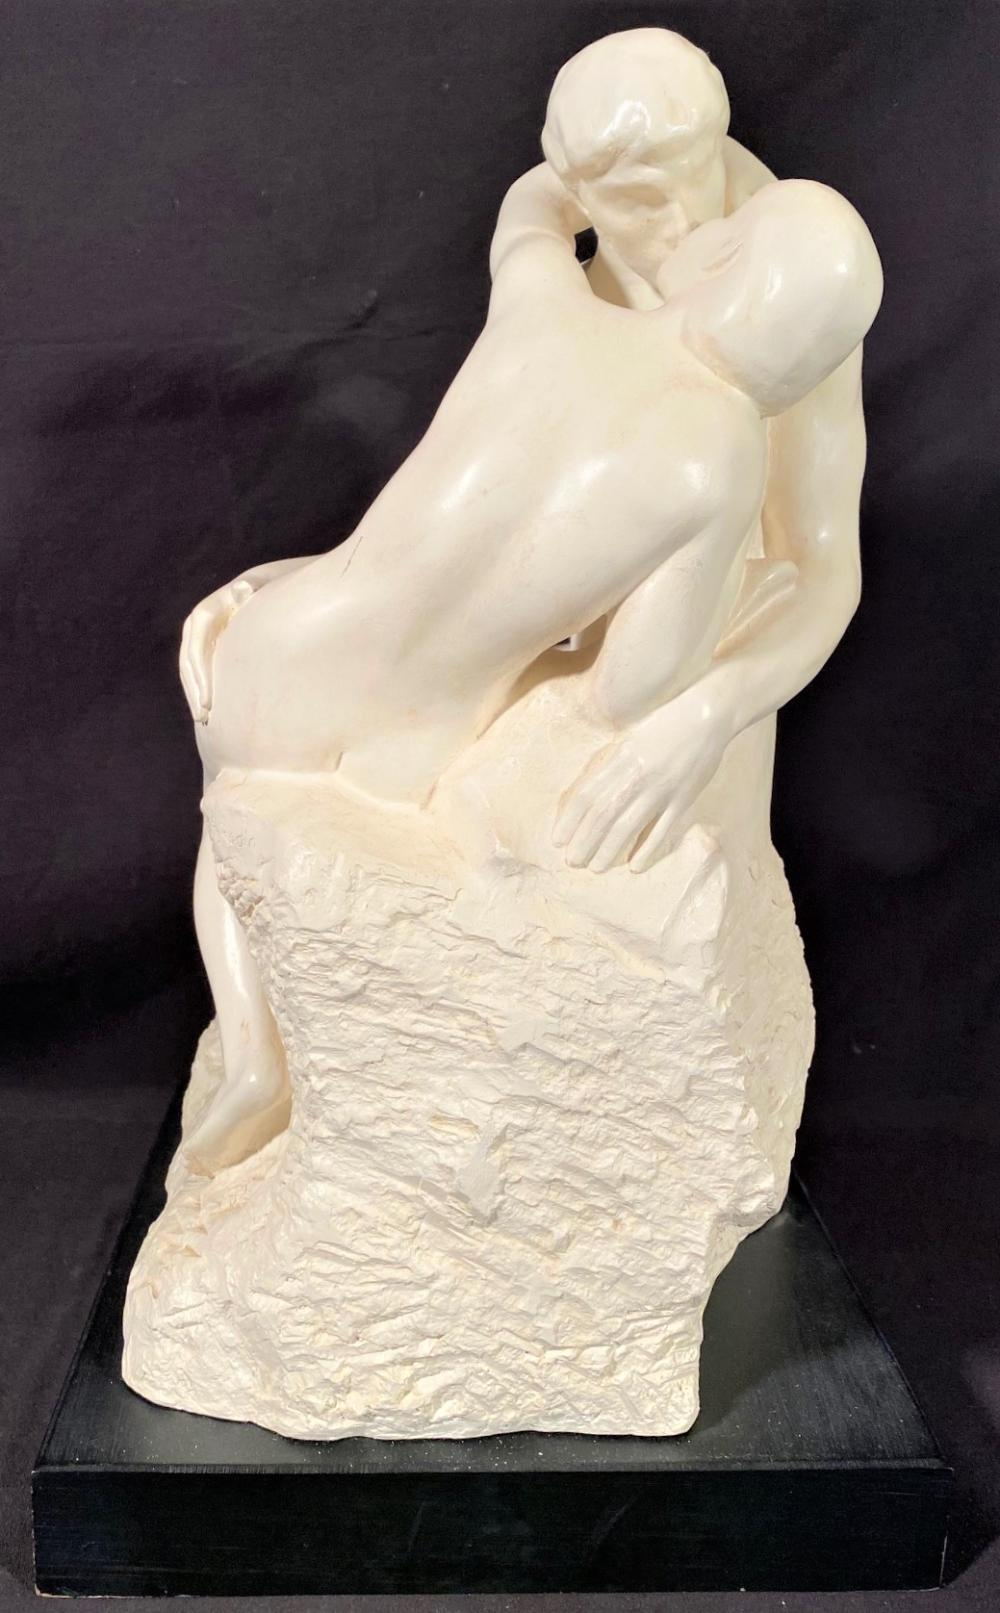 """SERGEY EYLANBEKOV (1960-NOW) PLASTER SCULPTURE """"THE KISS"""" RODINS 1889 SCULPTURE, DATED 1991. MEASURES 11 IN x 11 IN x 19 IN"""